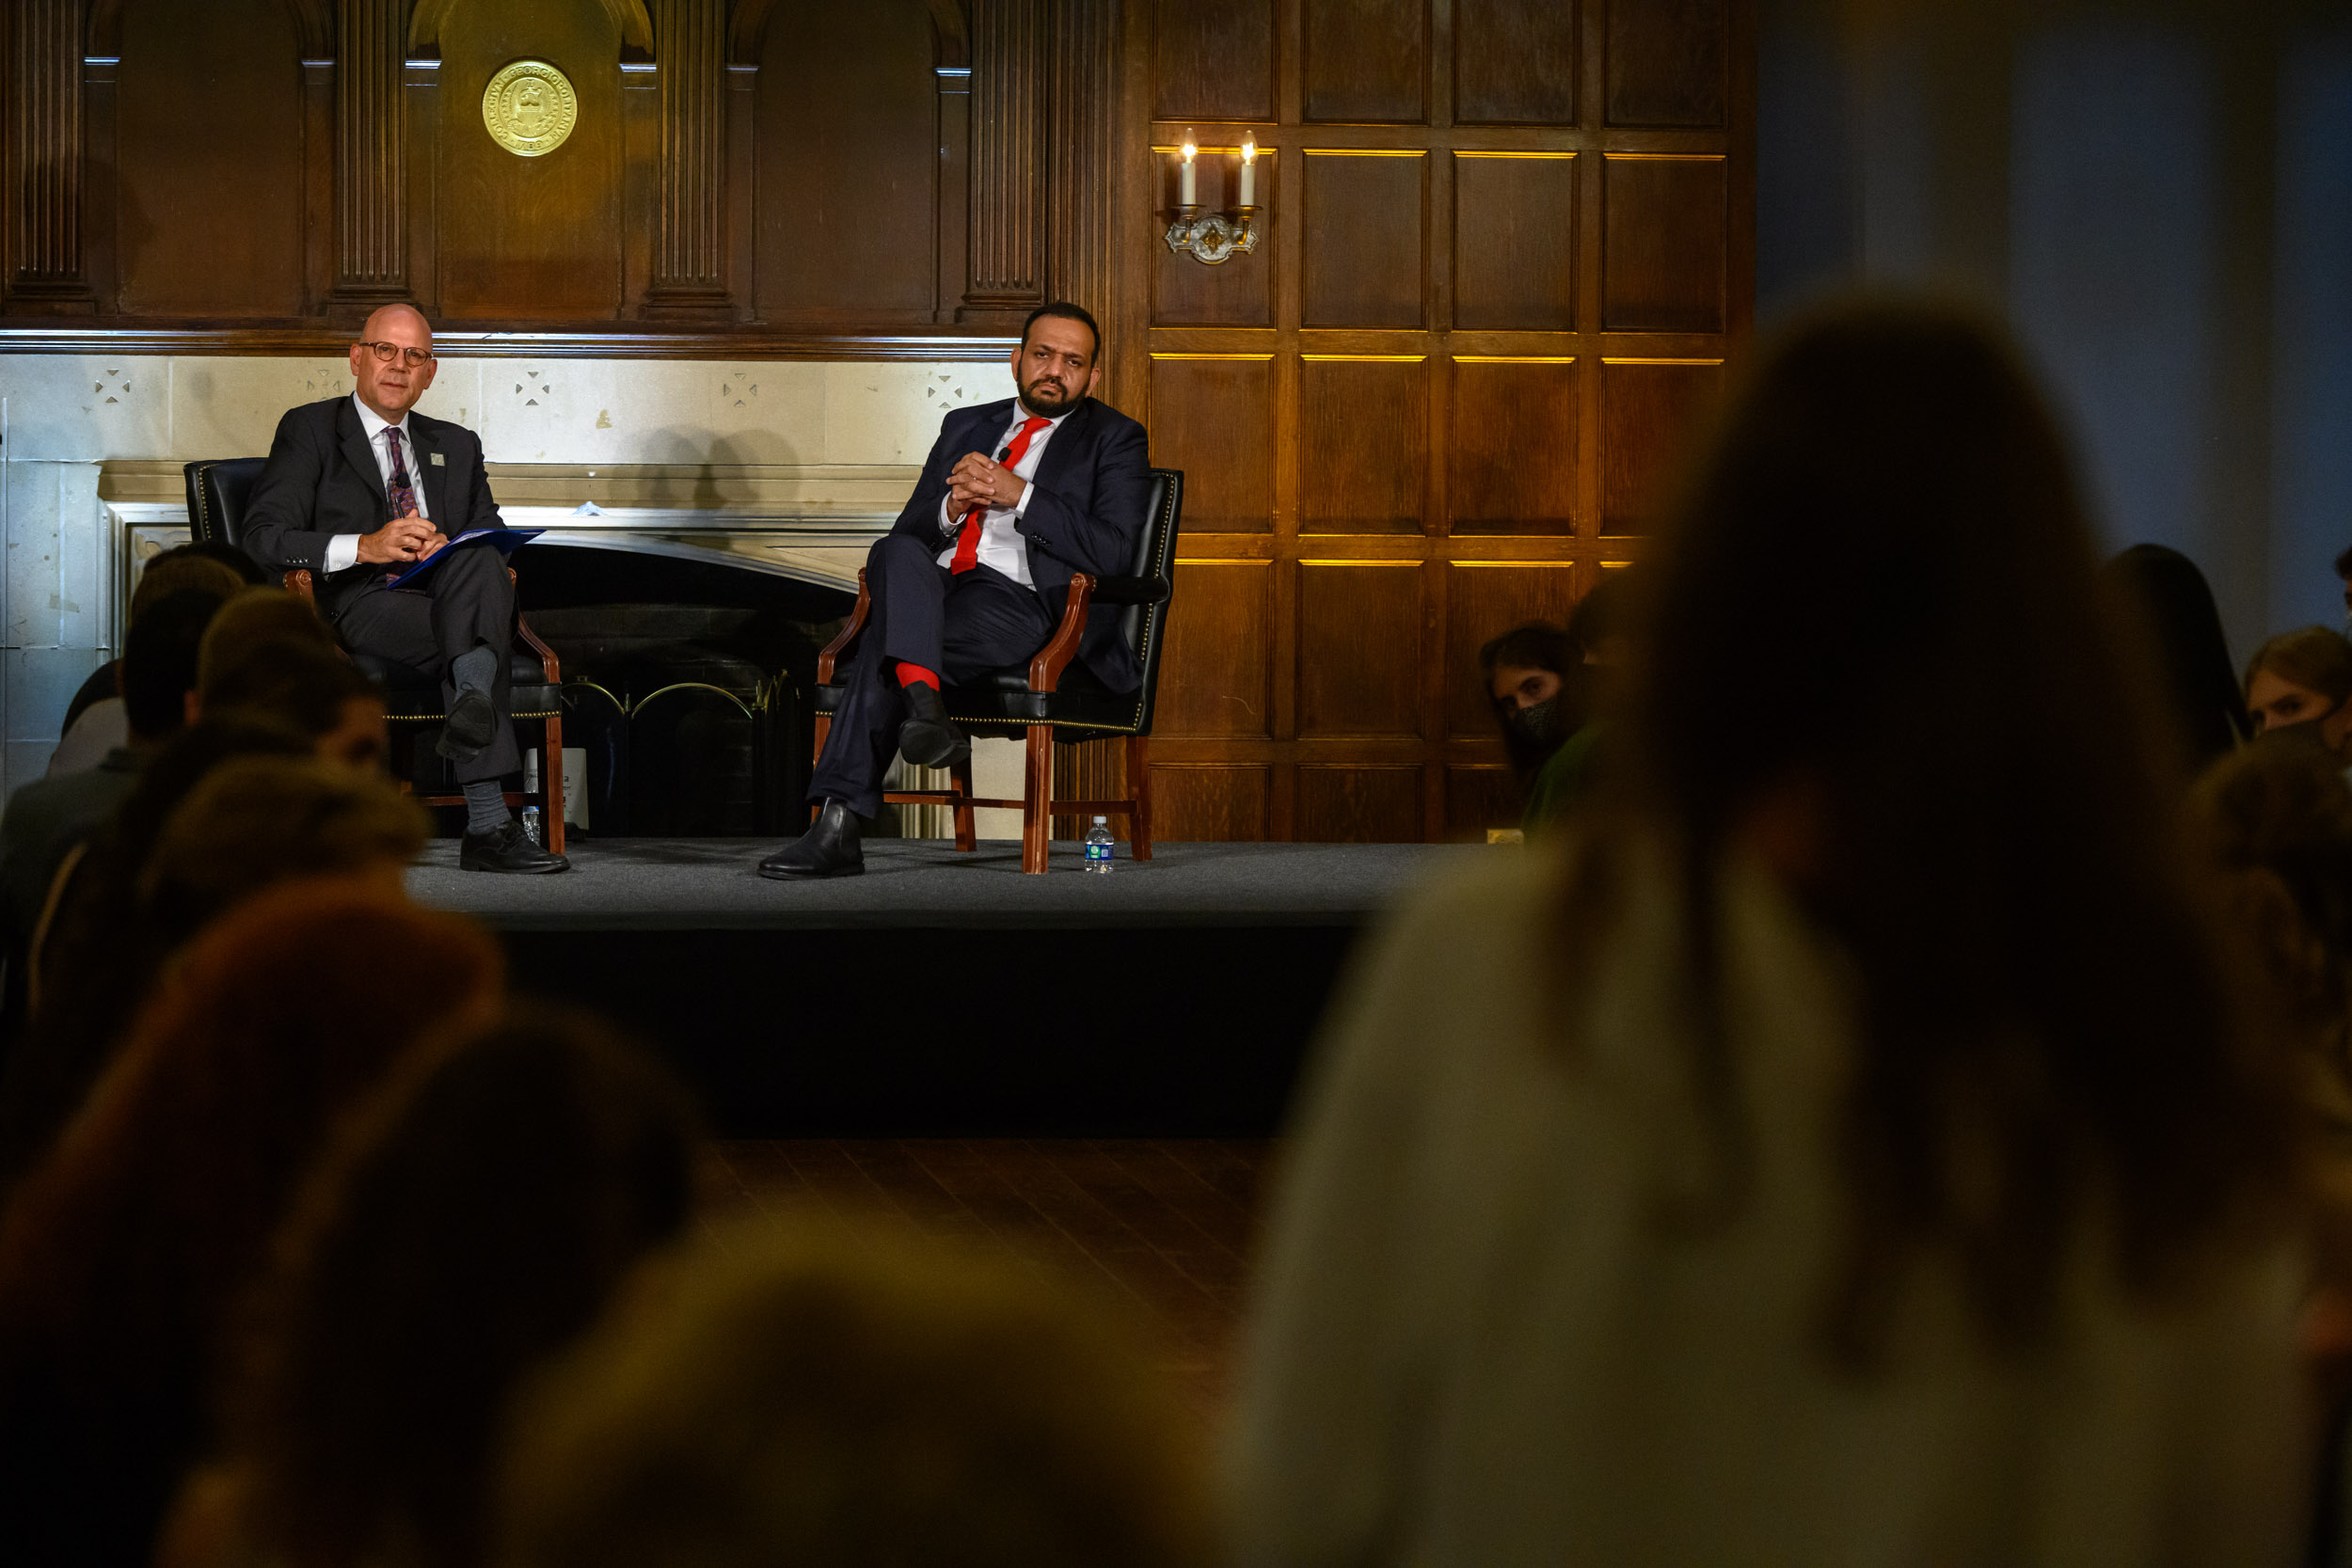 A photo of SFS Dean Joel Hellman and former Afghan Finance Minister Khalid Payenda seated on a stage, taken over the shoulder of a student attendee.